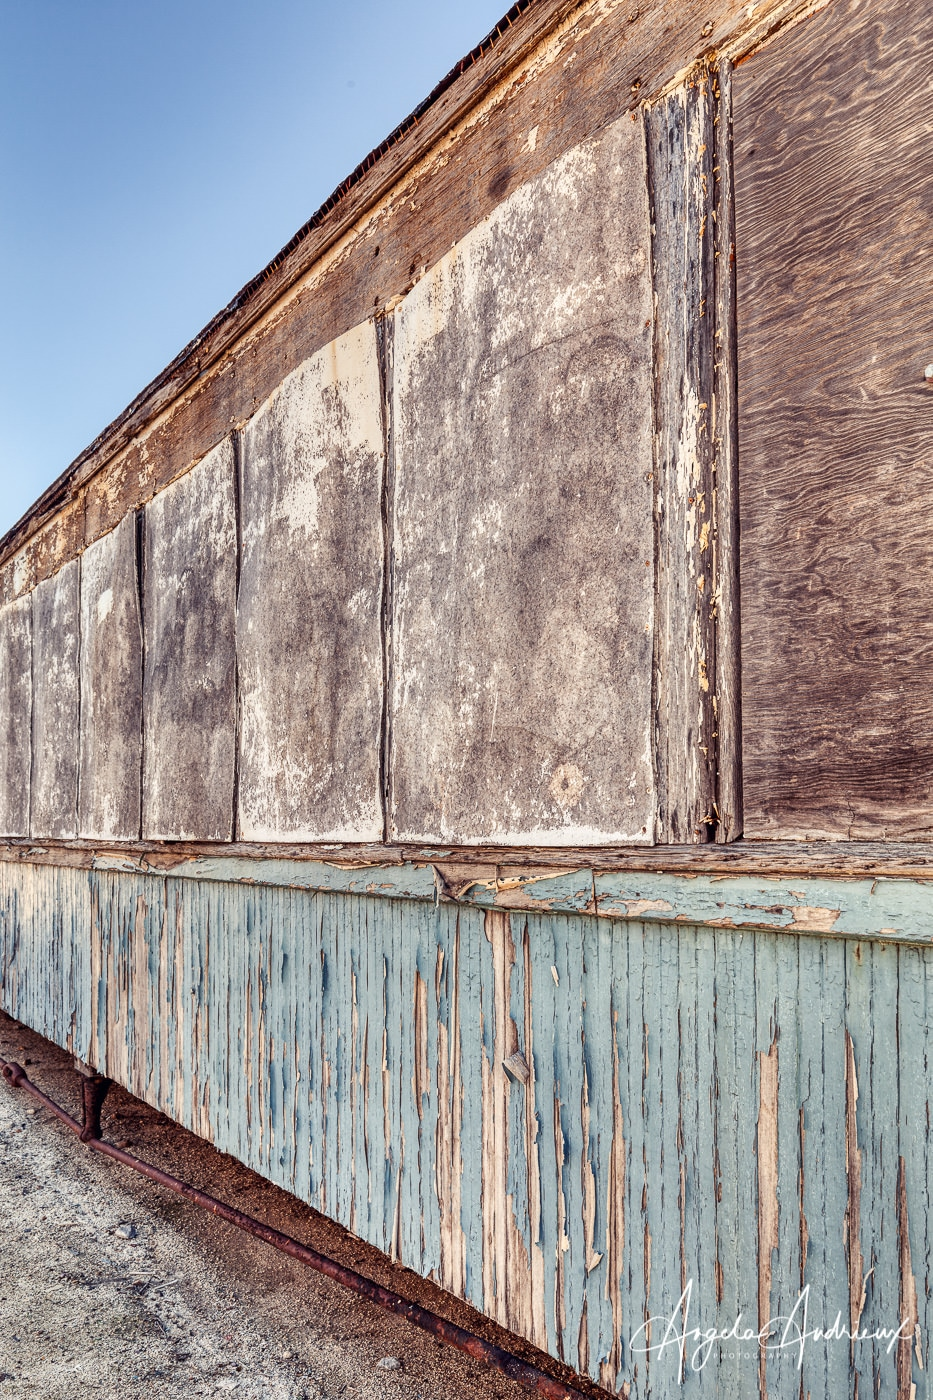 Wood Rail Car at the Pacific Southwest Railway Museum in Campo, California